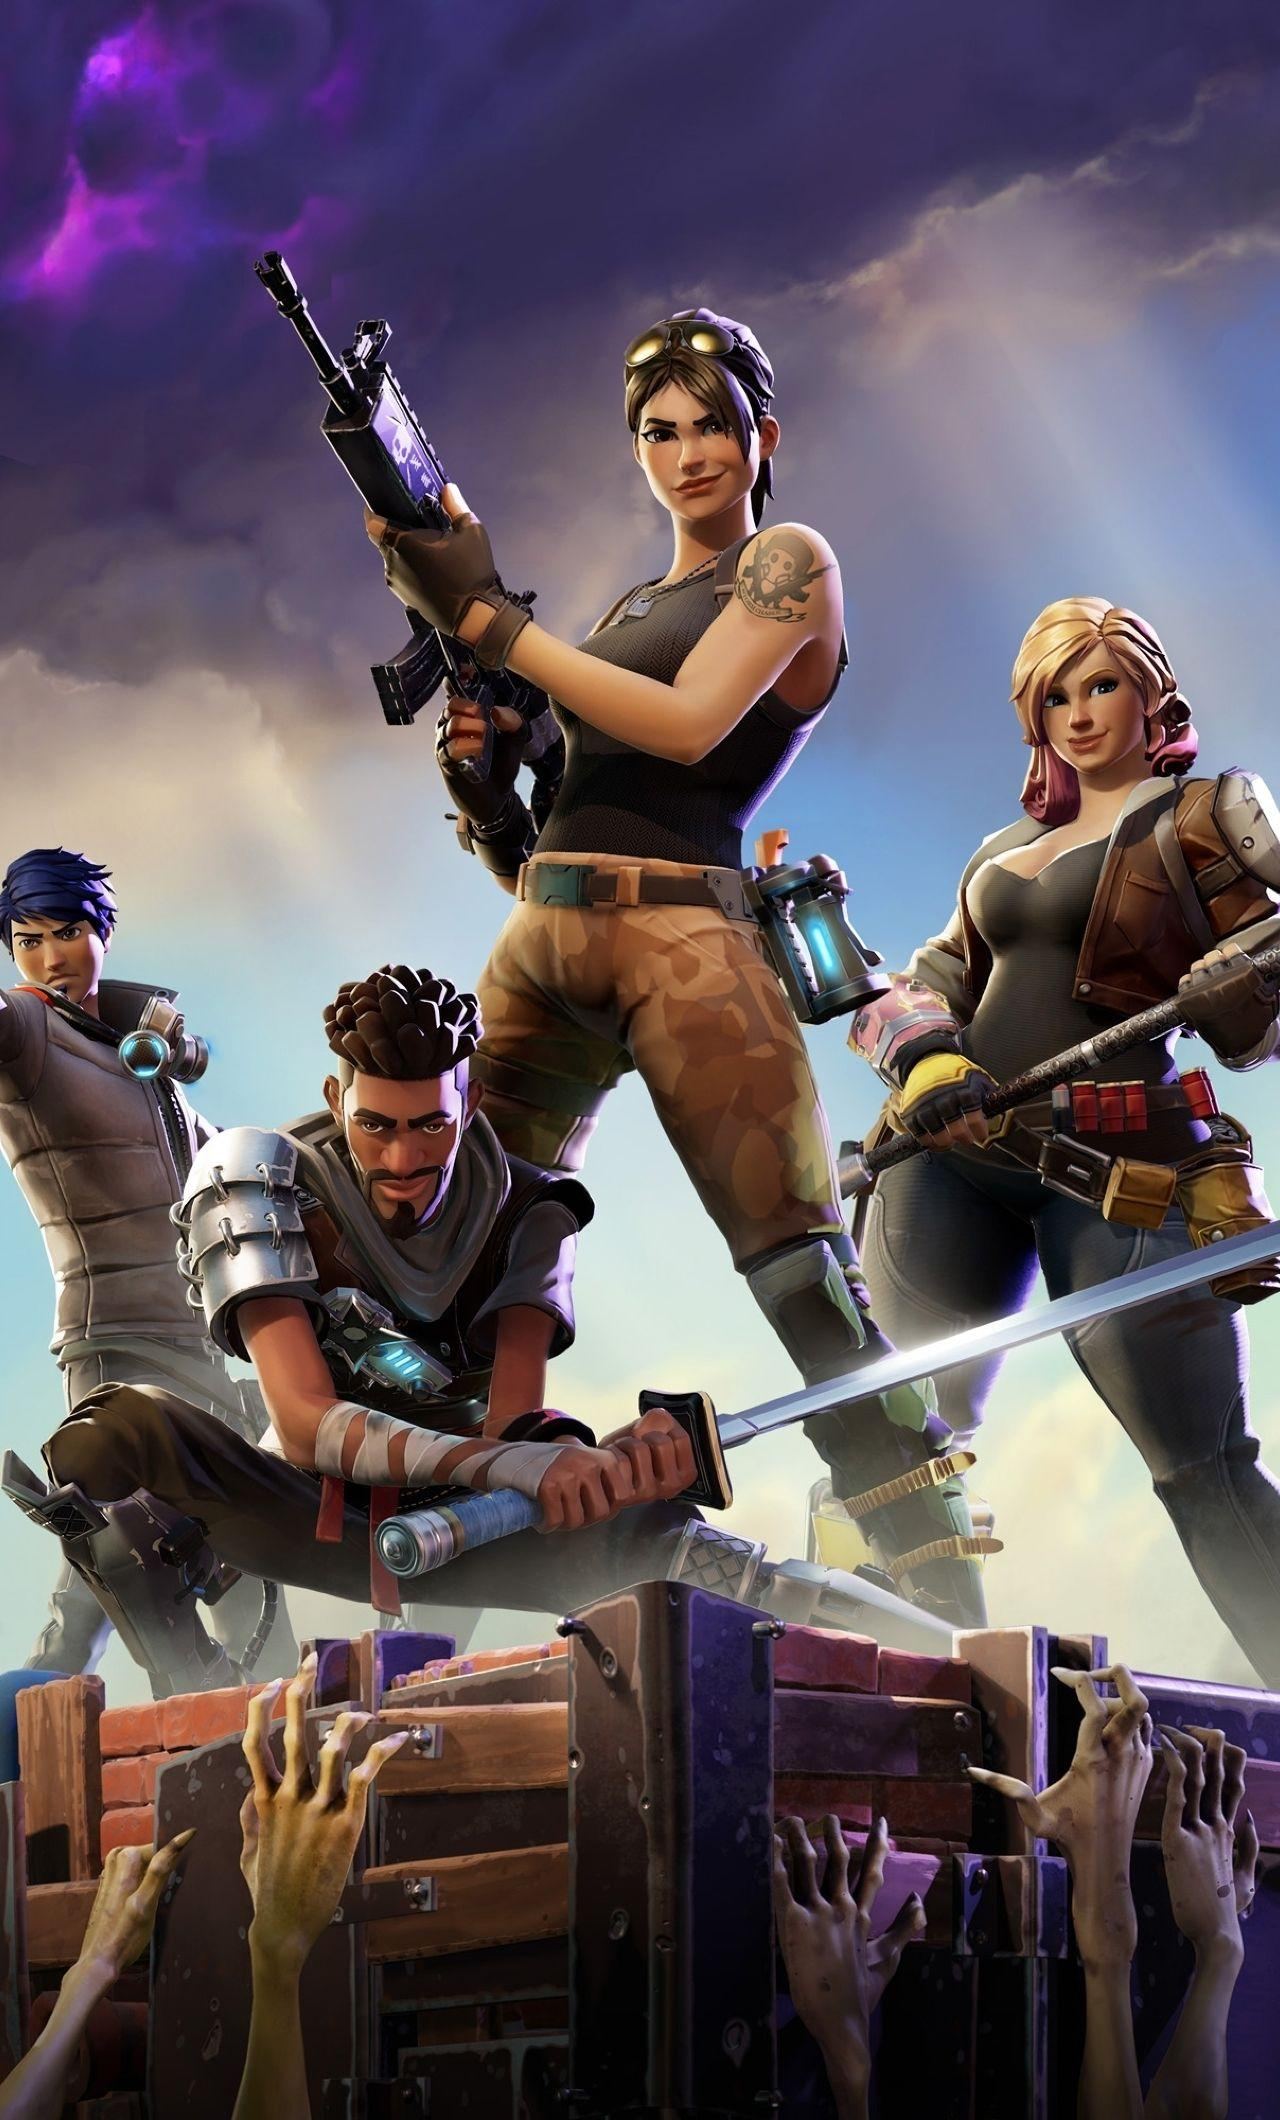 Download Fortnite Game Poster 800x600 Resolution, Full HD 2K Wallpapers